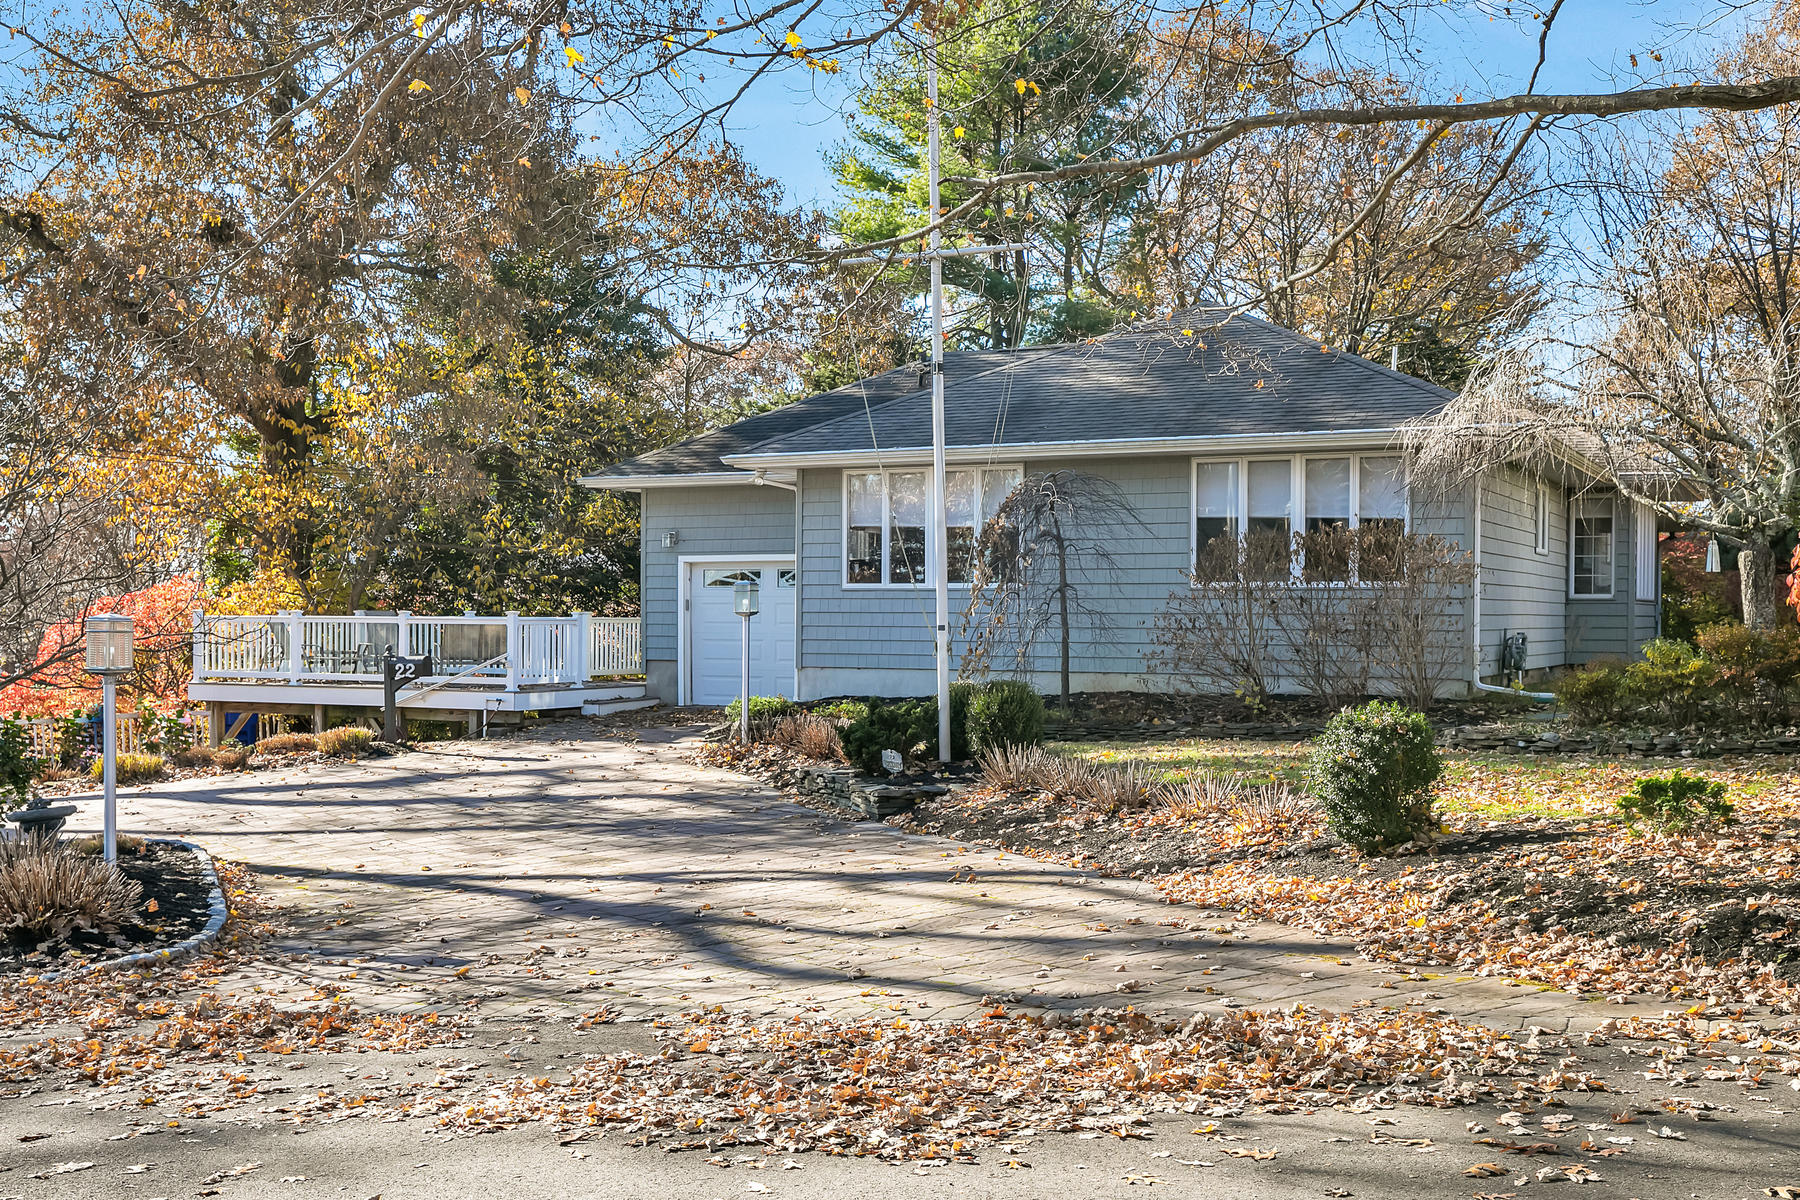 Single Family Homes for Sale at Enjoy Outstanding Views Of The Toms River 22 Cranmoor Drive Toms River, New Jersey 08753 United States